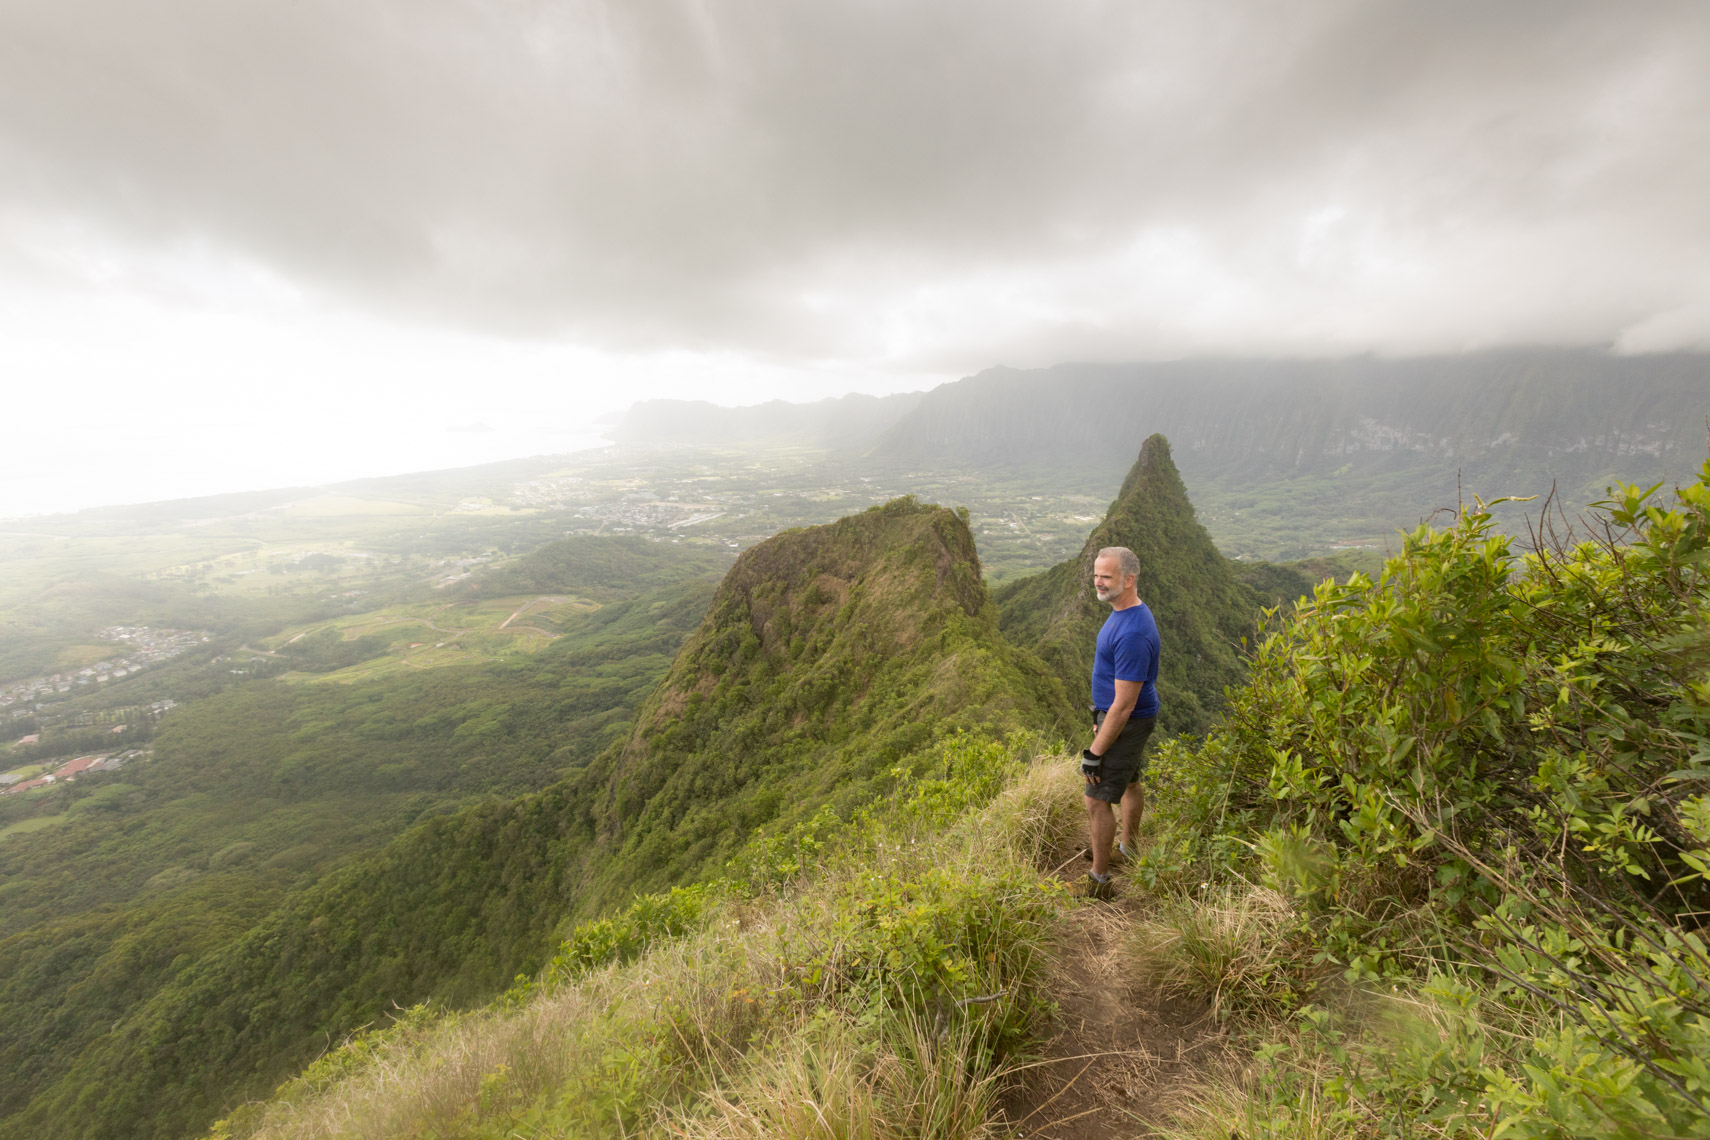 13-Lifestyle-Hawaii-Hiking